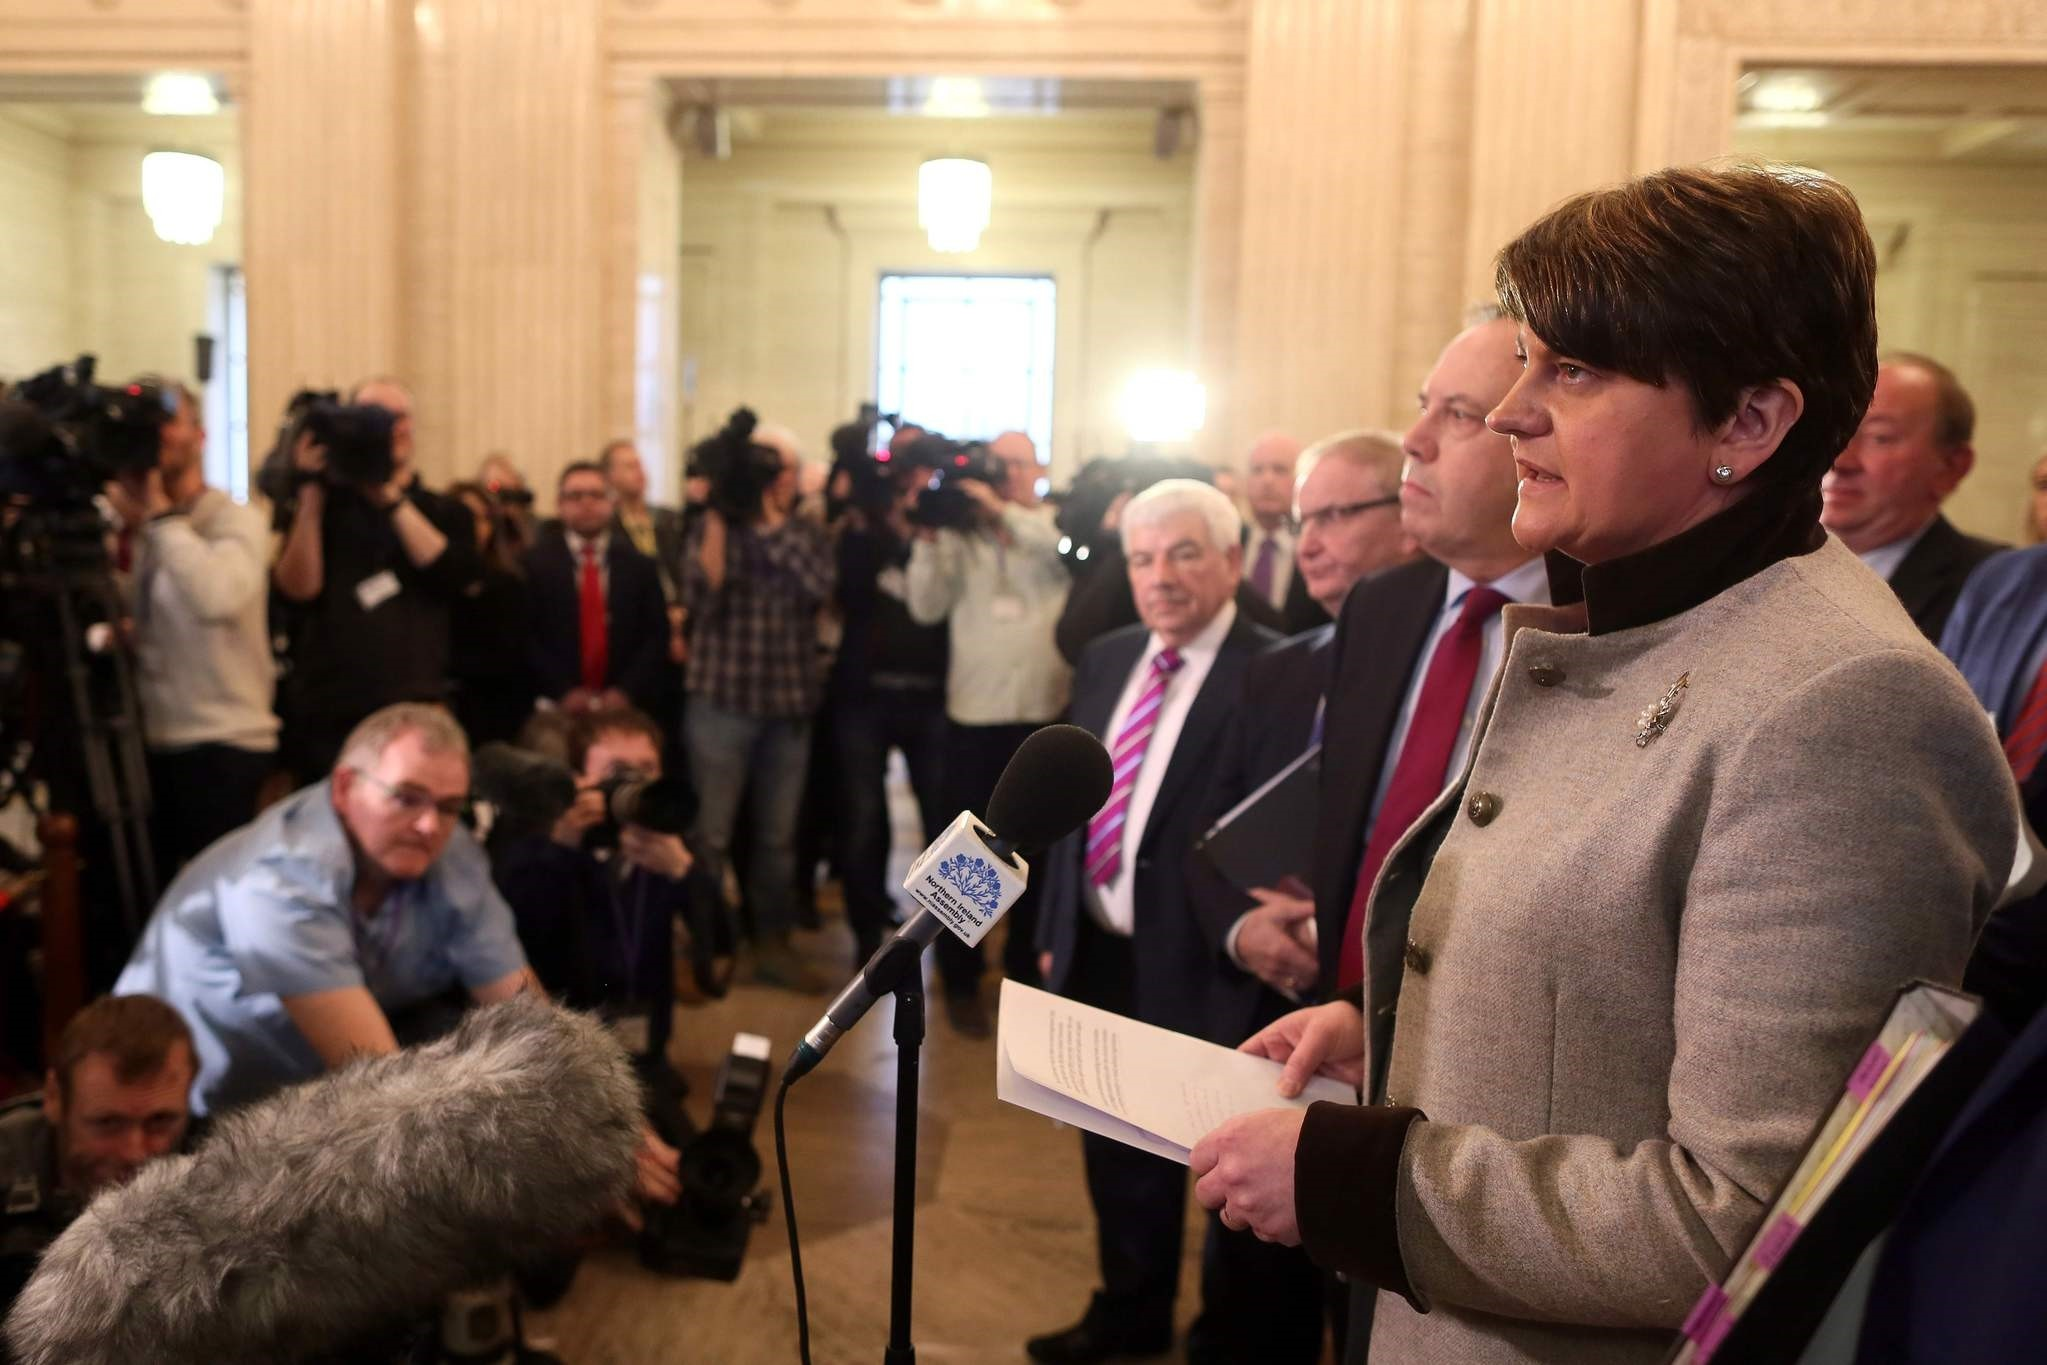 Democratic Unionist Party leader Arlene Foster, speaks to members of the media in the Great Hall at Stormont before the start of the Assembly in Belfast, Northern Ireland. (AFP Photo)